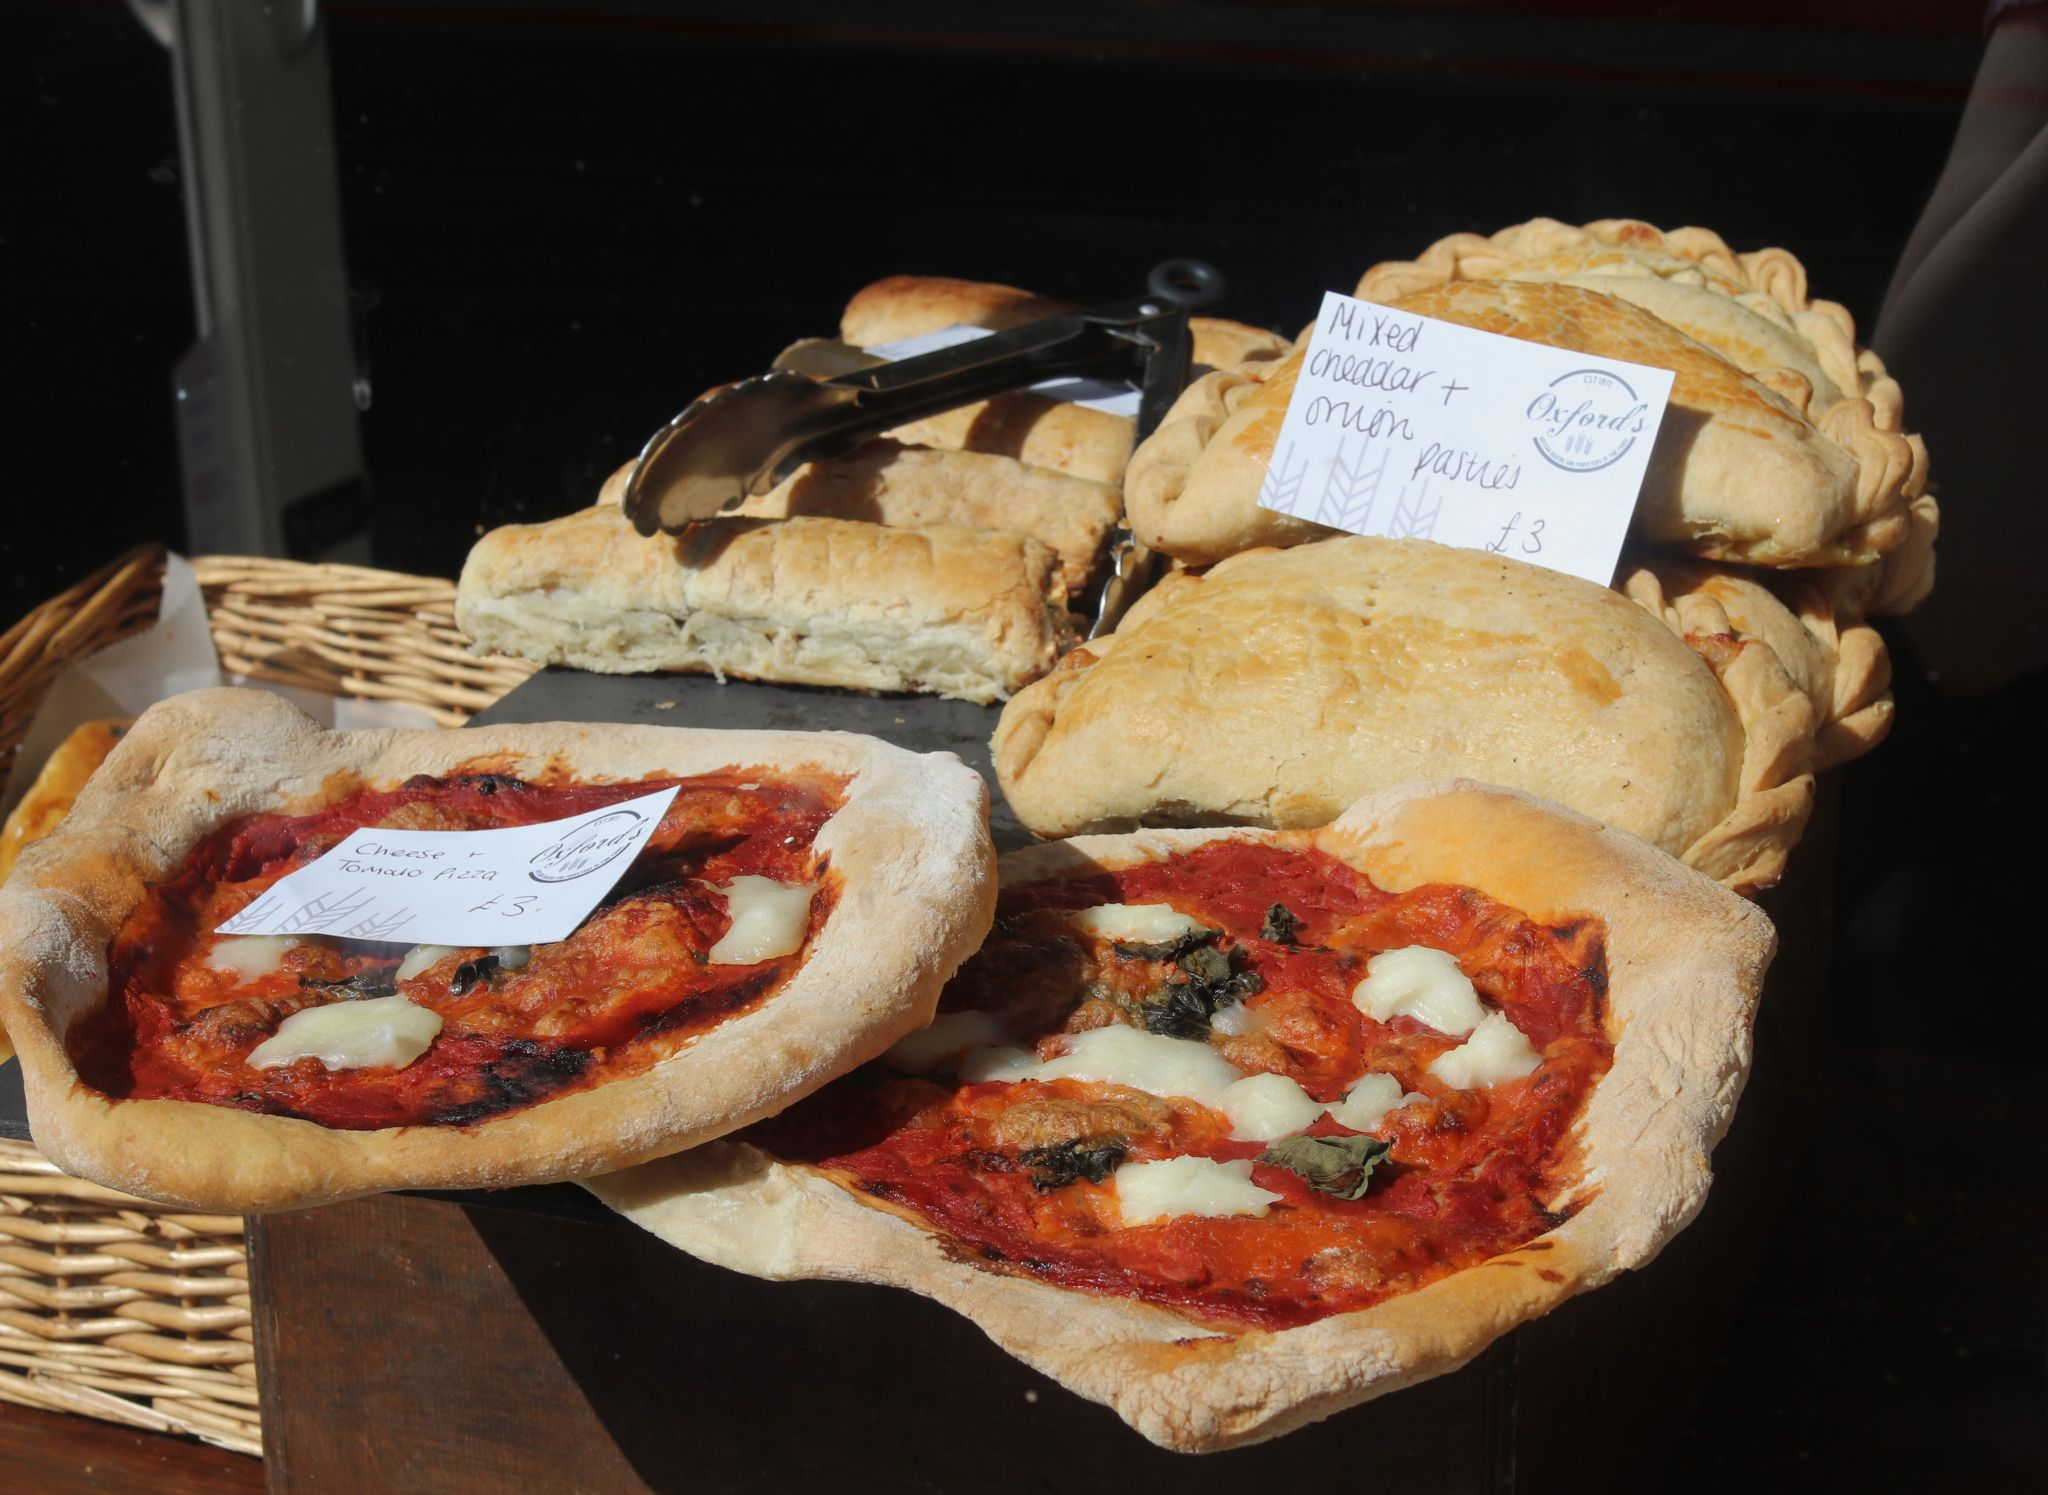 Sherborne Dorset Oxfords bakery fresh pizzas and pastries